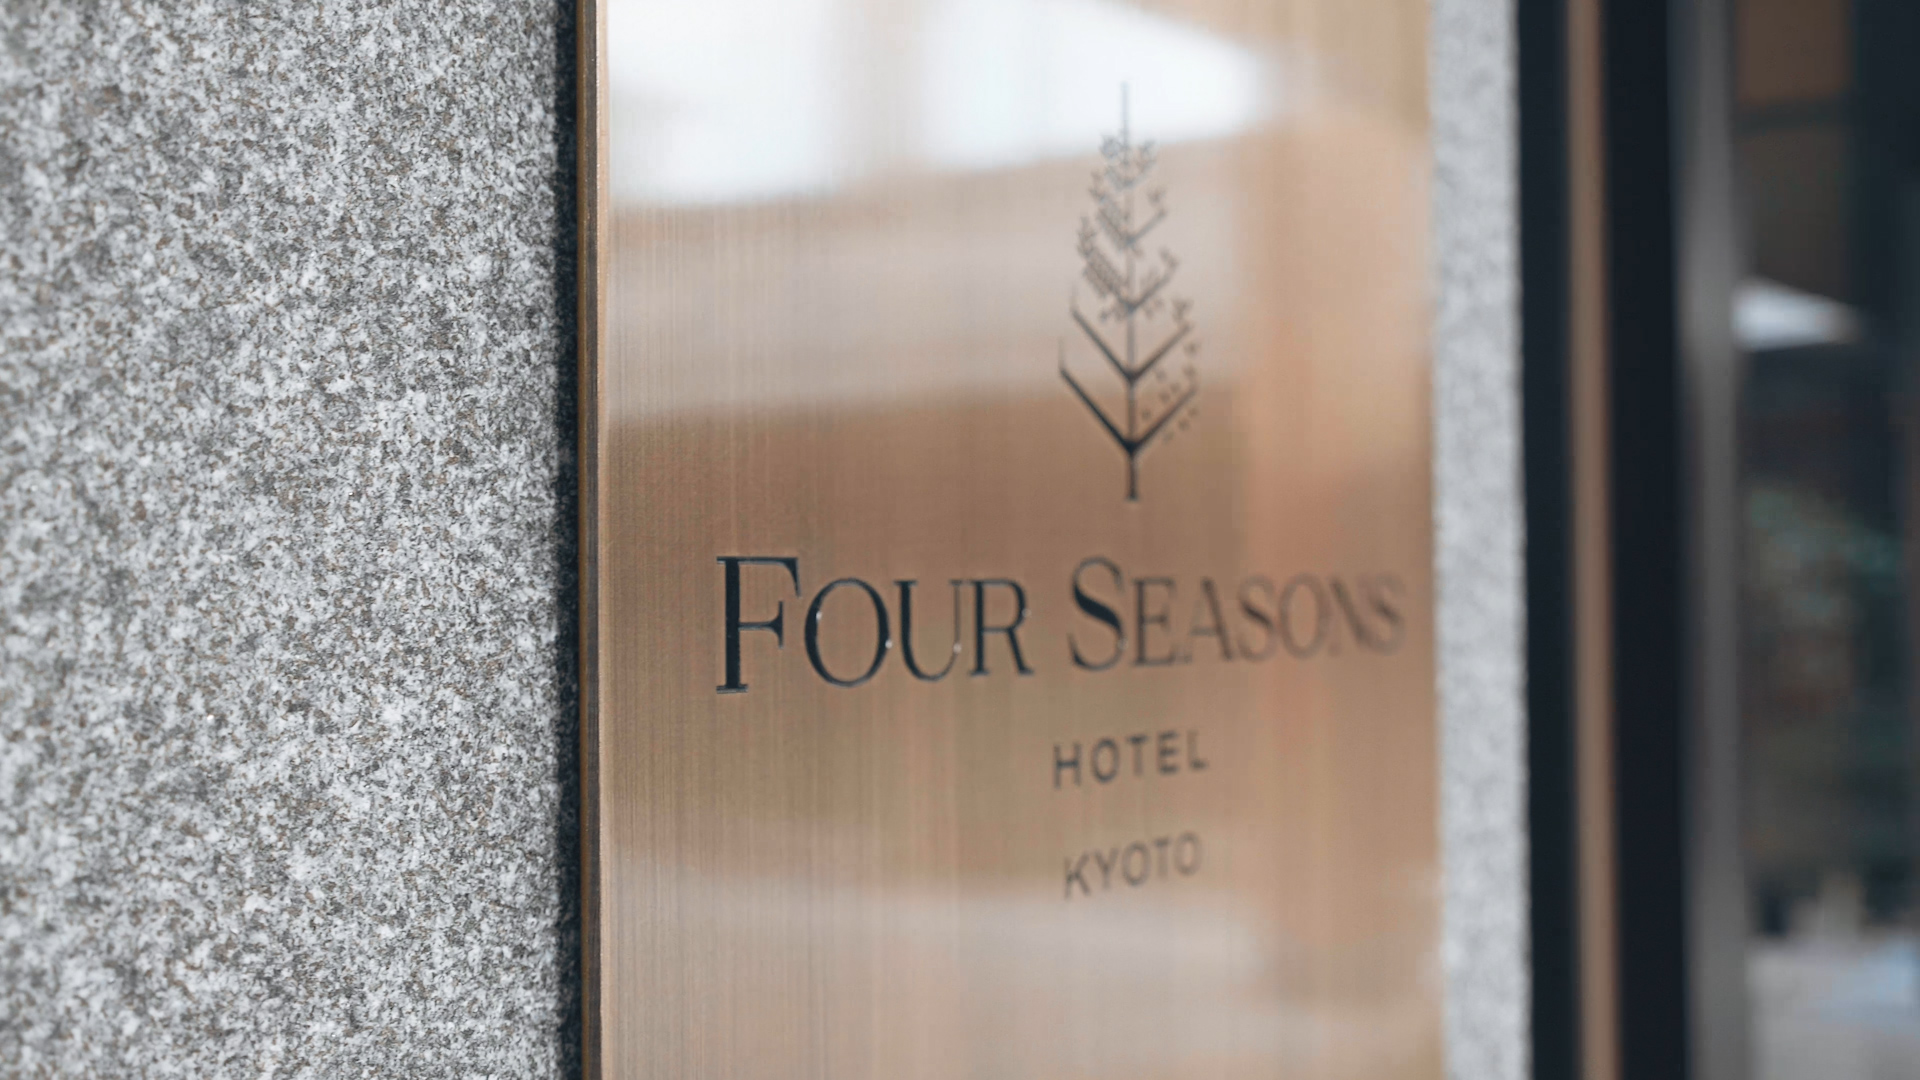 My Kyoto – Discover Kyoto's Hidden Secret with Four Seasons Hotel Kyoto